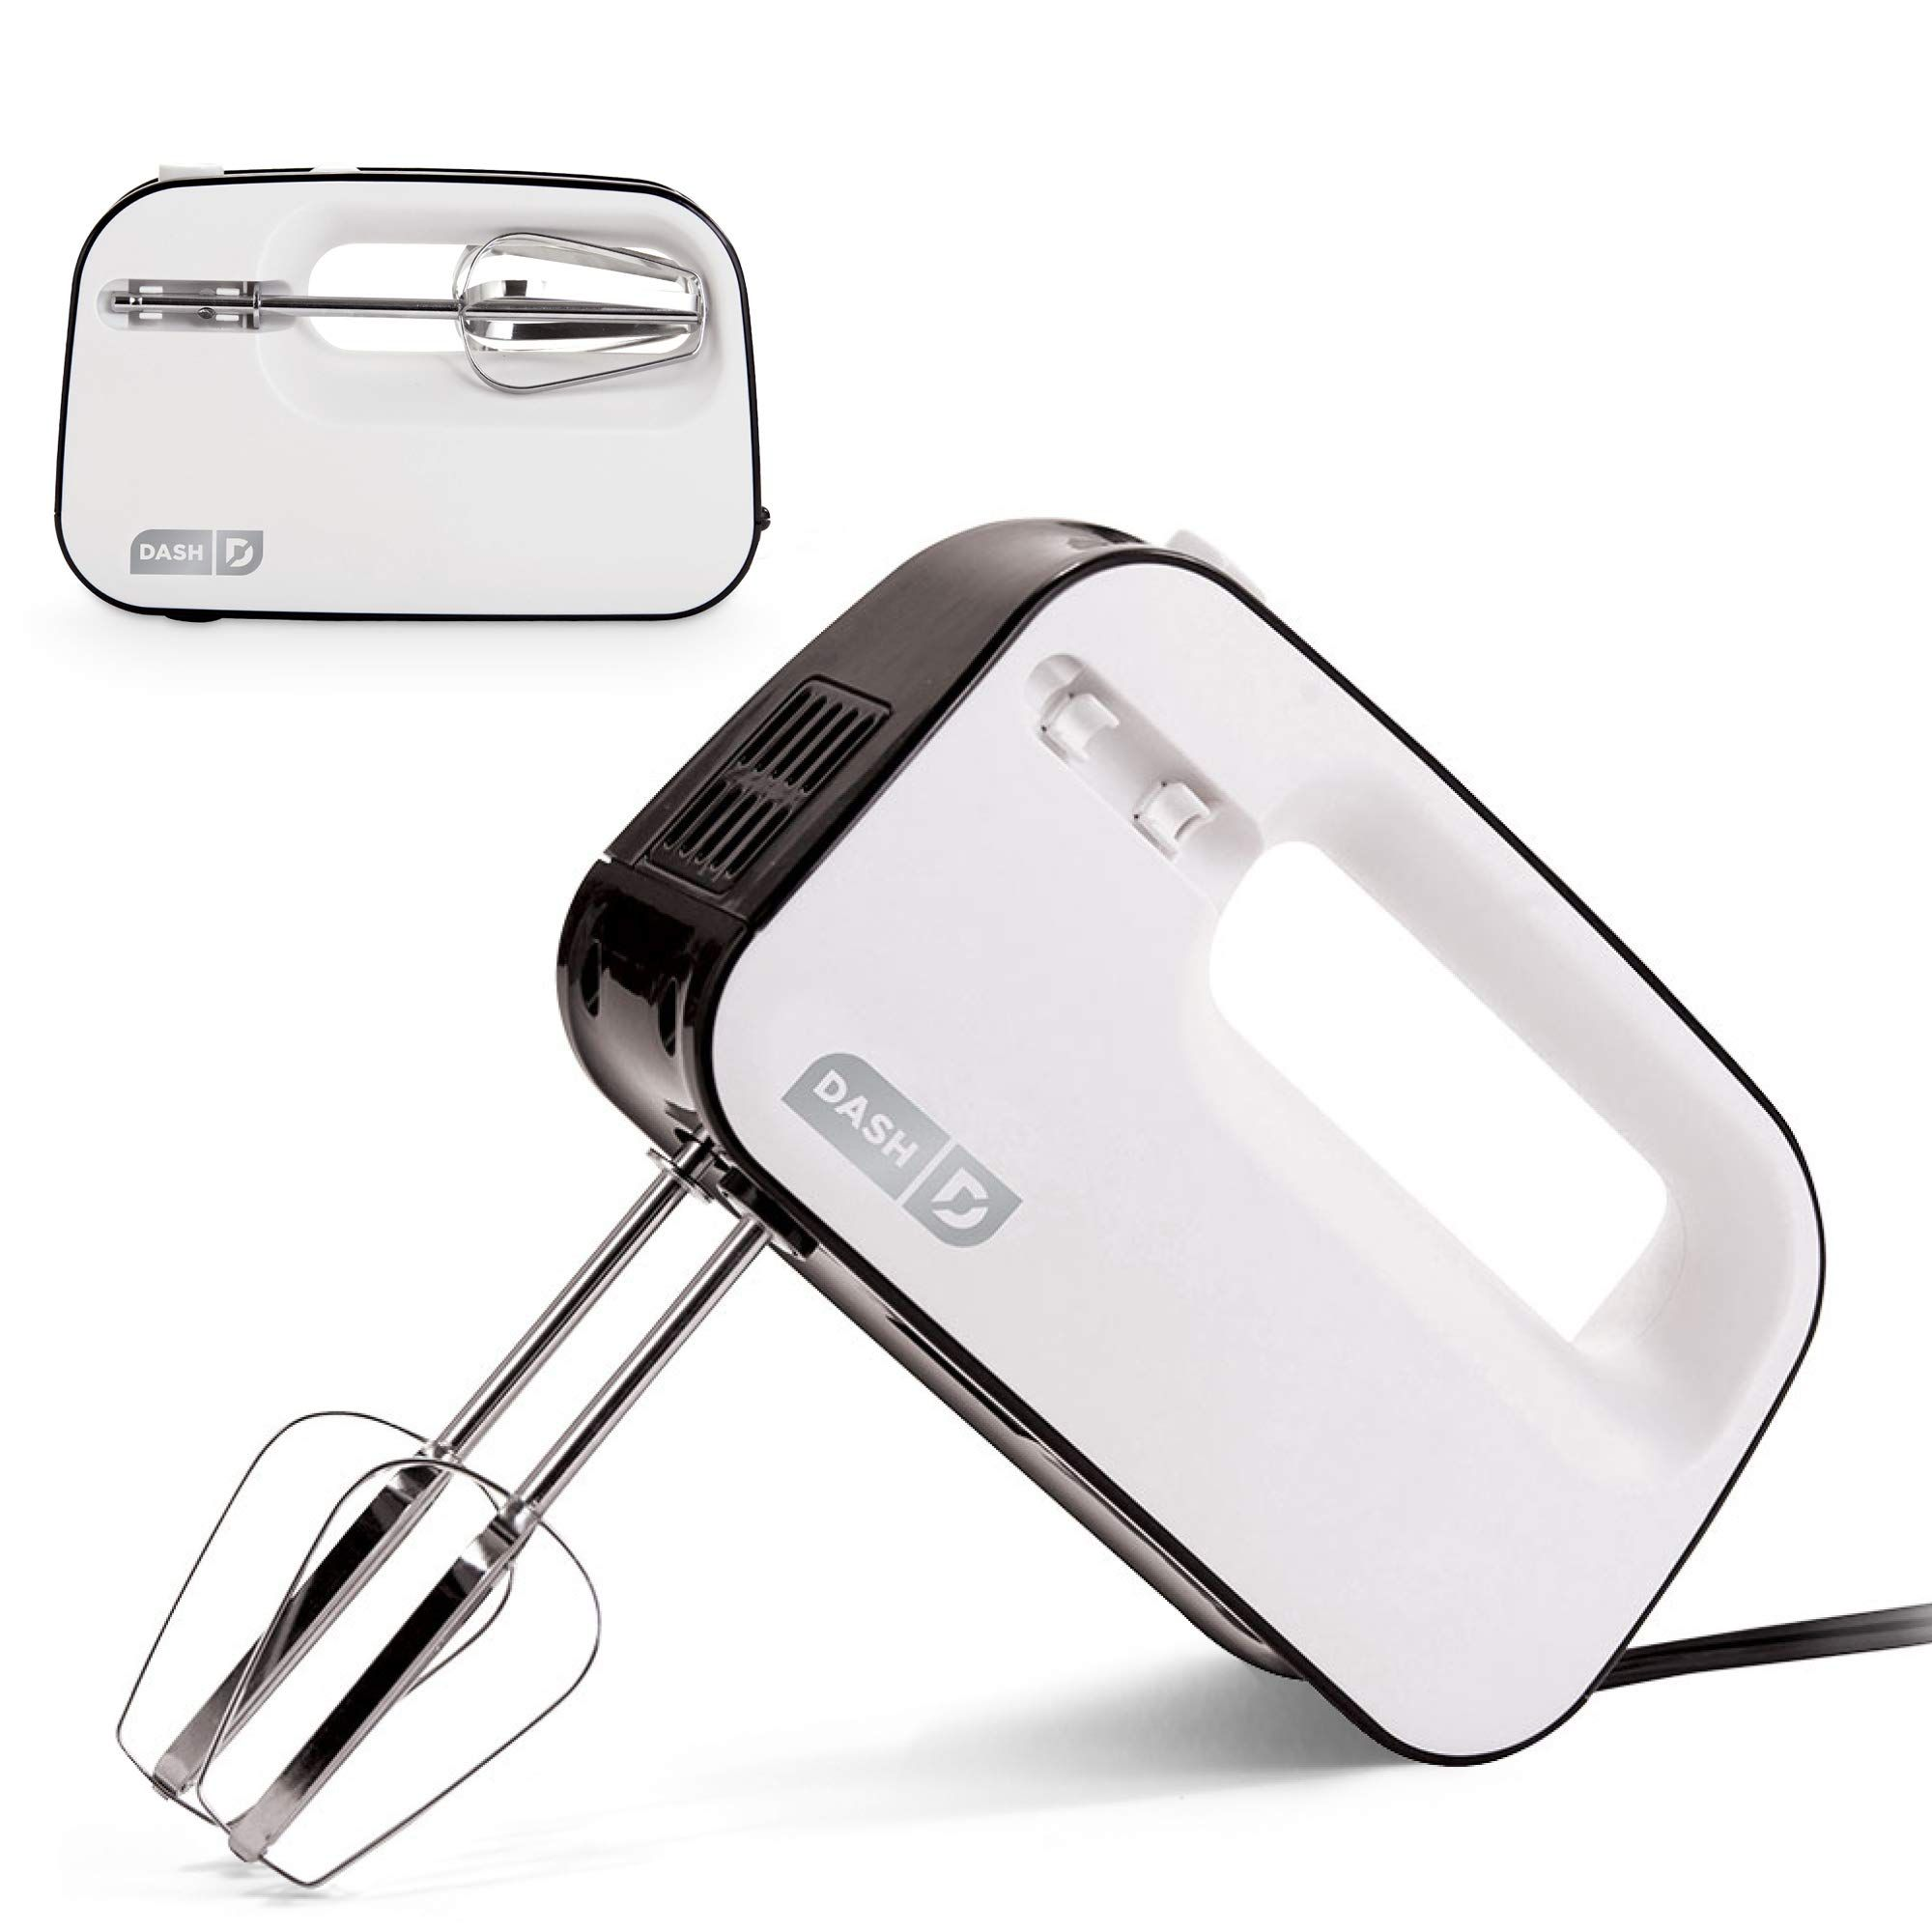 Dash shm01dswh smart store compact hand mixer electric for